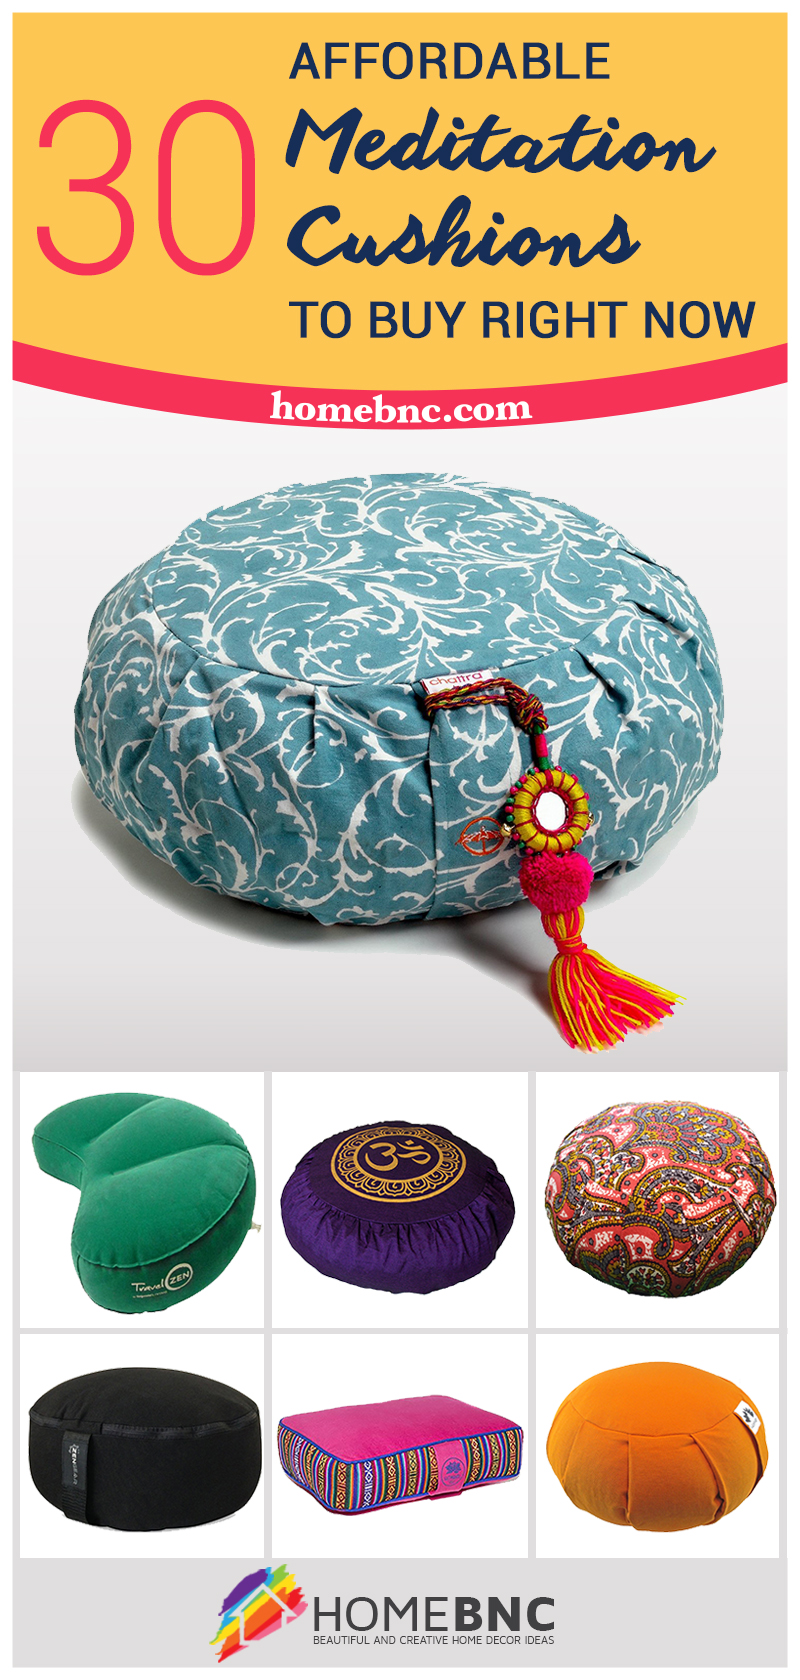 Best Meditation Cushions For - Best meditation cushions to buy right now